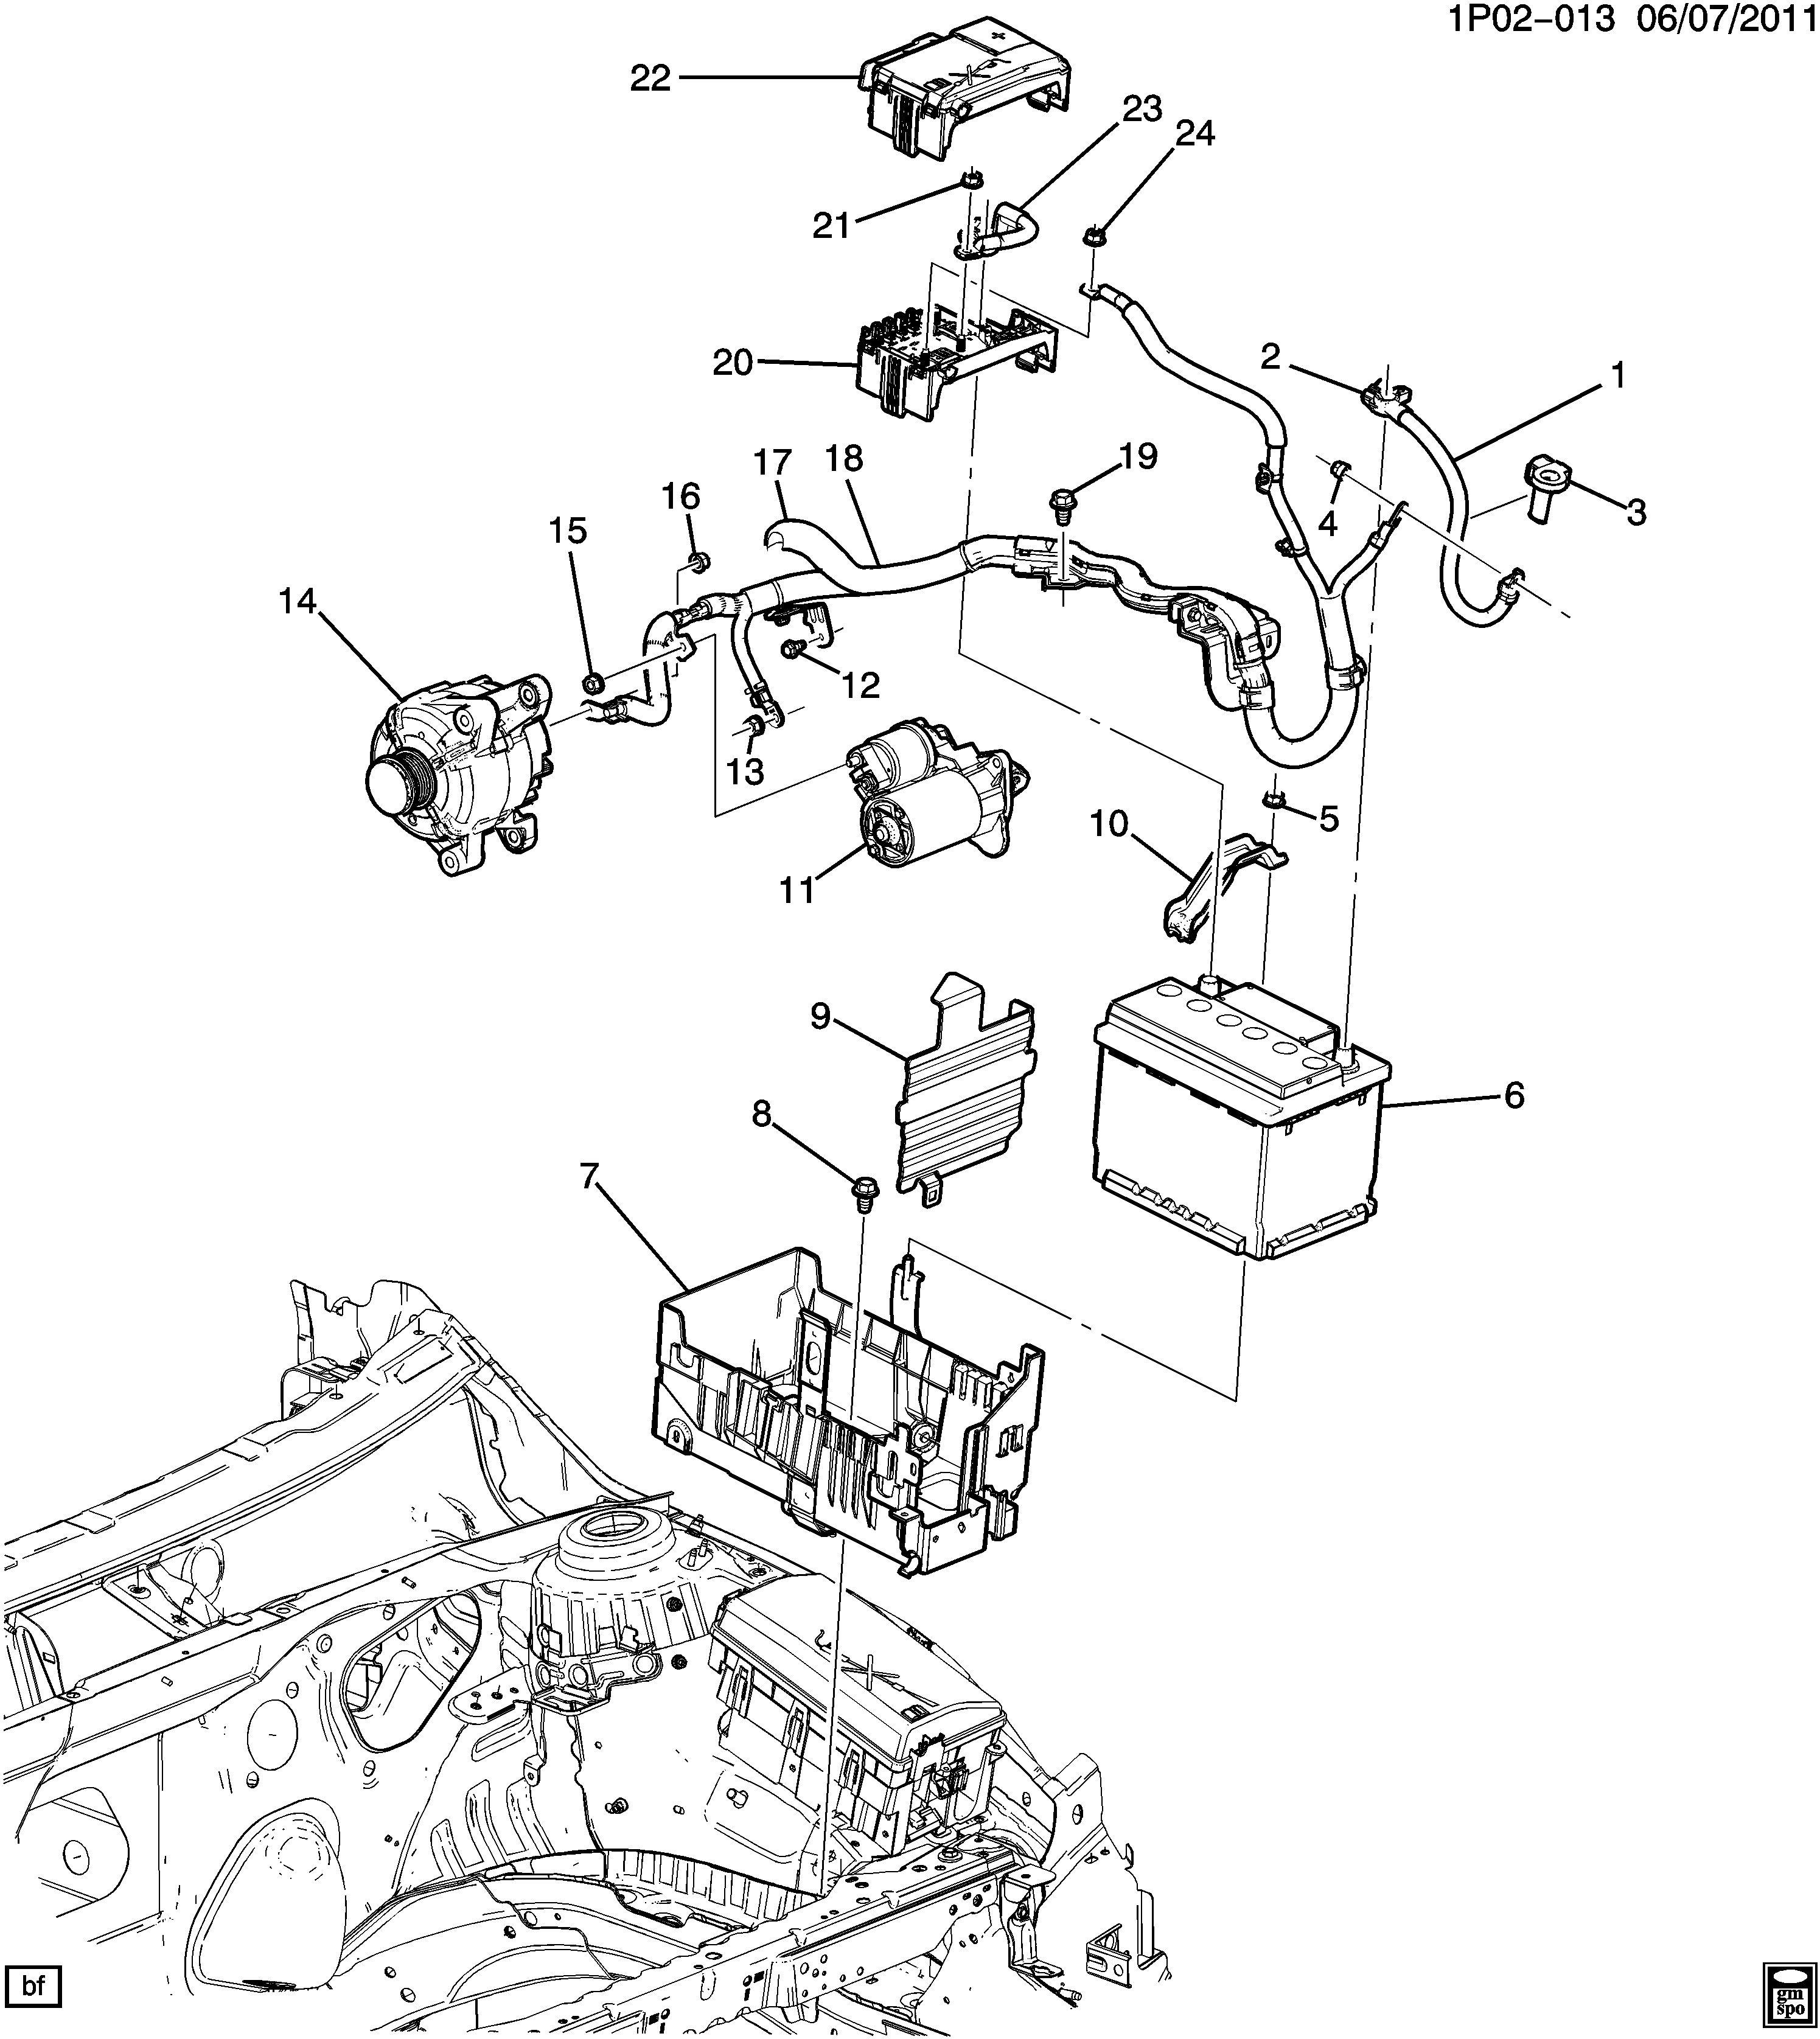 Chevrolet Cruze Block. Main wiring junction and fuse block